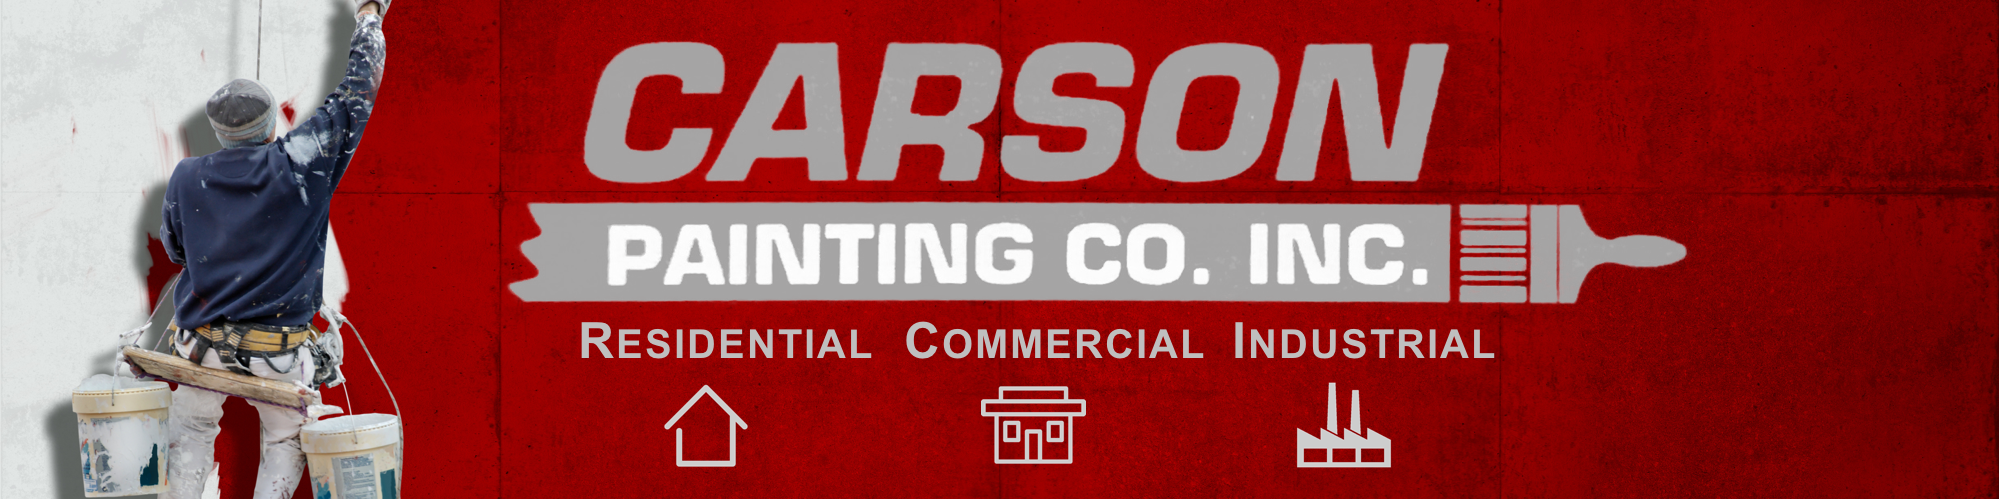 Carson Painting Co. Inc.